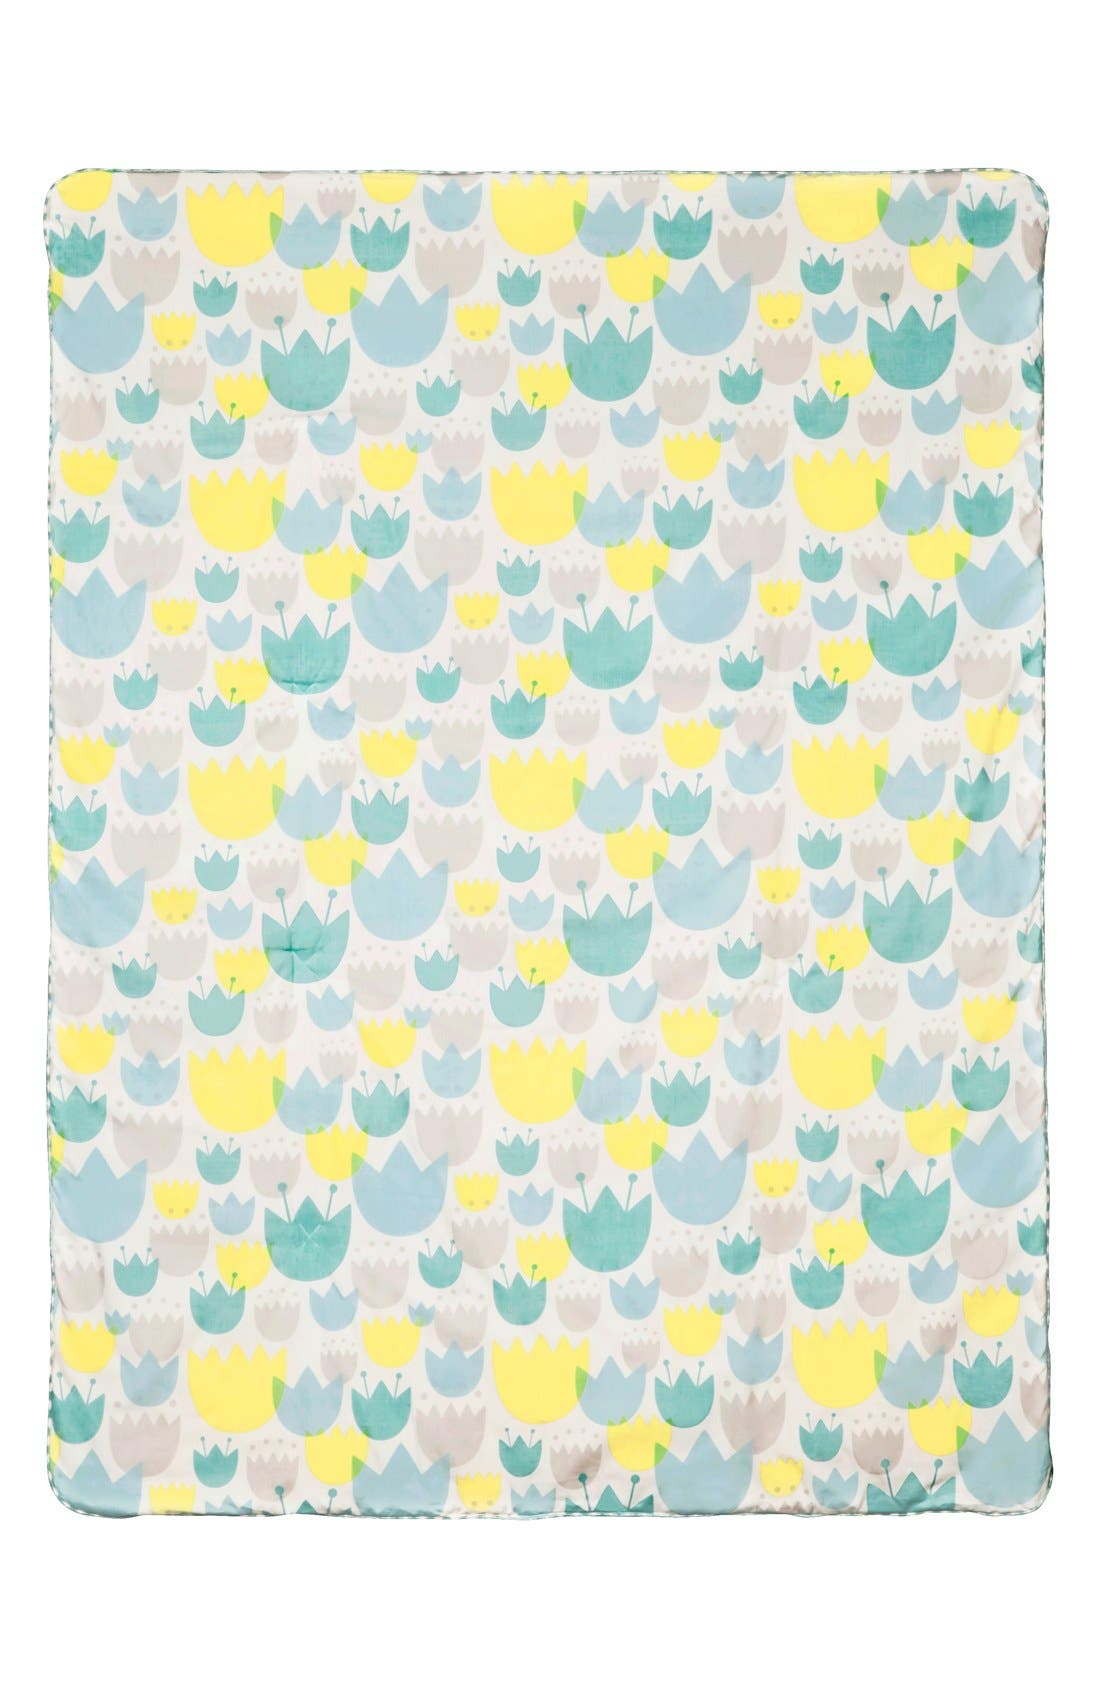 'Garden' Crib Sheet, Crib Skirt, Play Blanket, Changing Pad Cover, Stroller Blanket & Wall Decals,                             Alternate thumbnail 2, color,                             BLUE